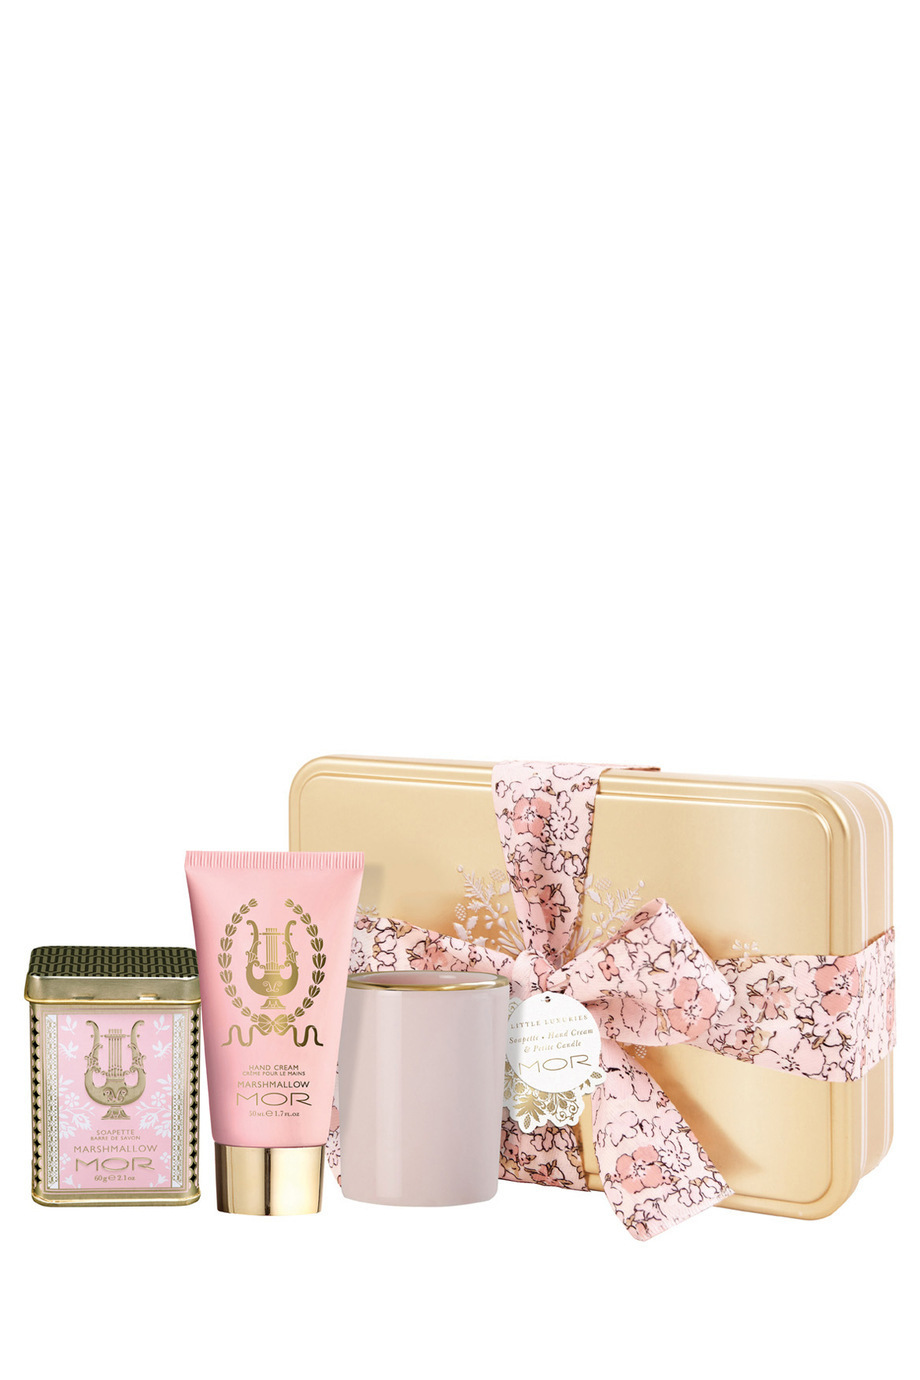 of Little Luxuries in the romantic floral scent of Marshmallow. Gift ...